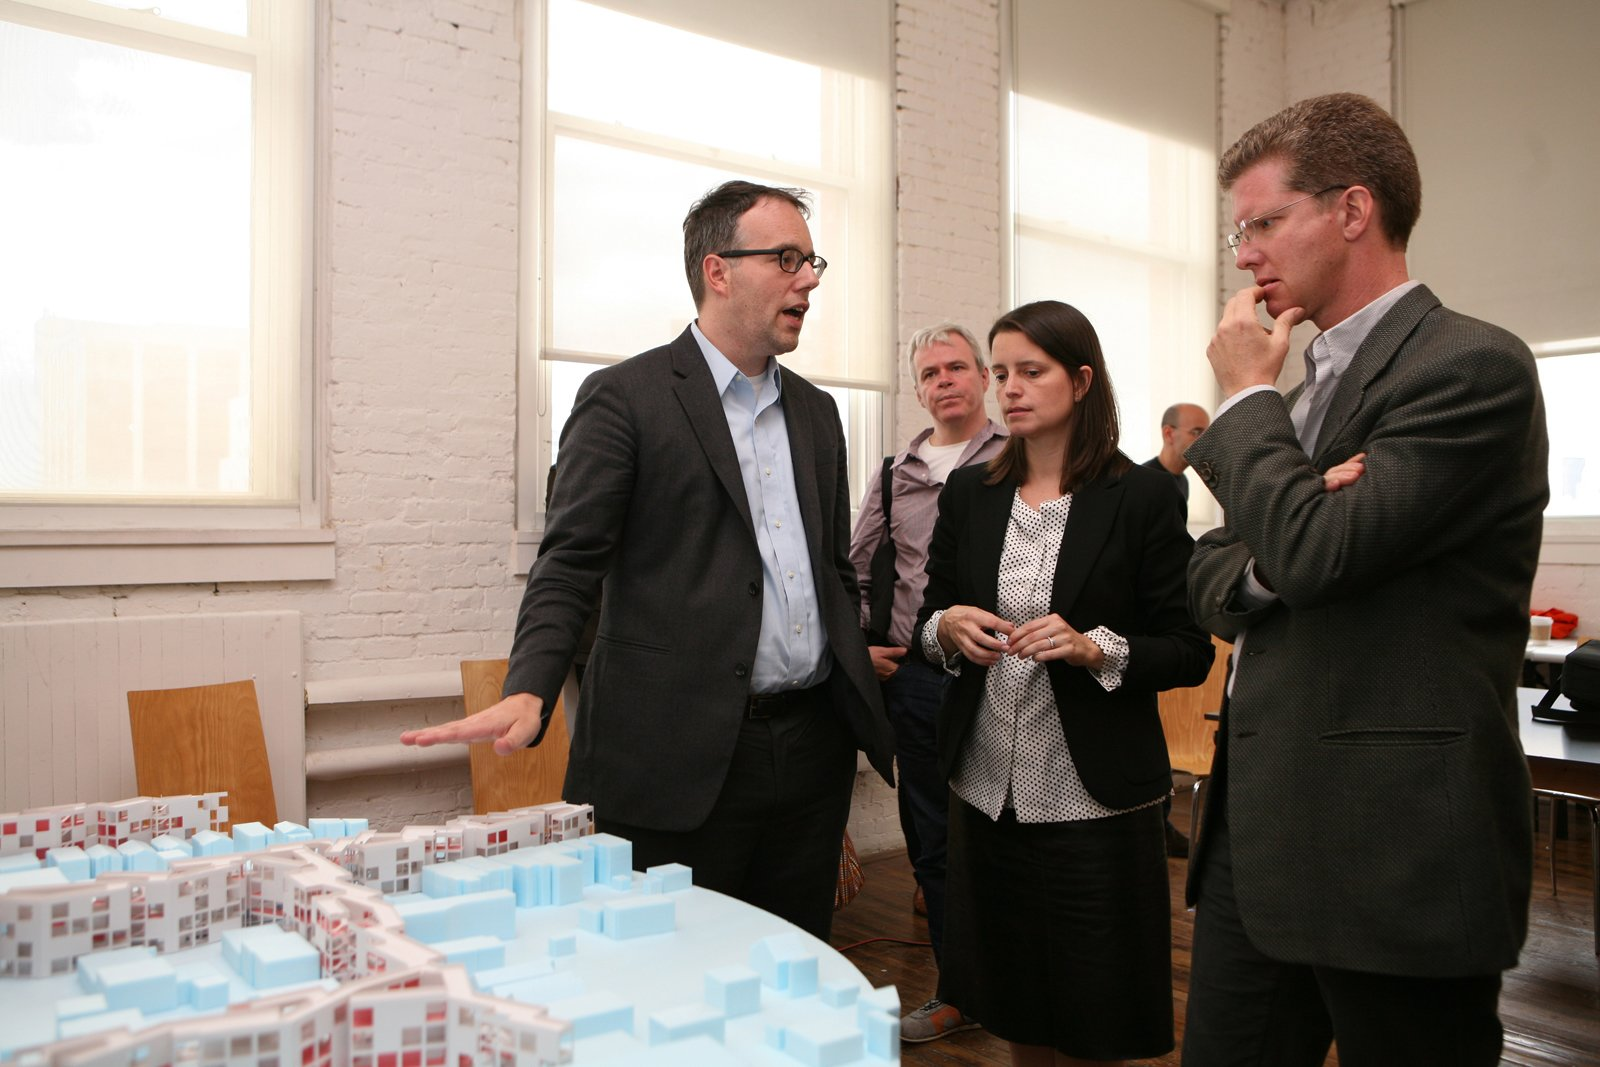 """U.S. Secretary of Housing and Urban Development Shaun Donovan (right) discusses MOS's proposal with Michael Merideth and Hilary Sample.  Photo 1 of 7 in """"Foreclosed"""" Open Studio at PS1"""